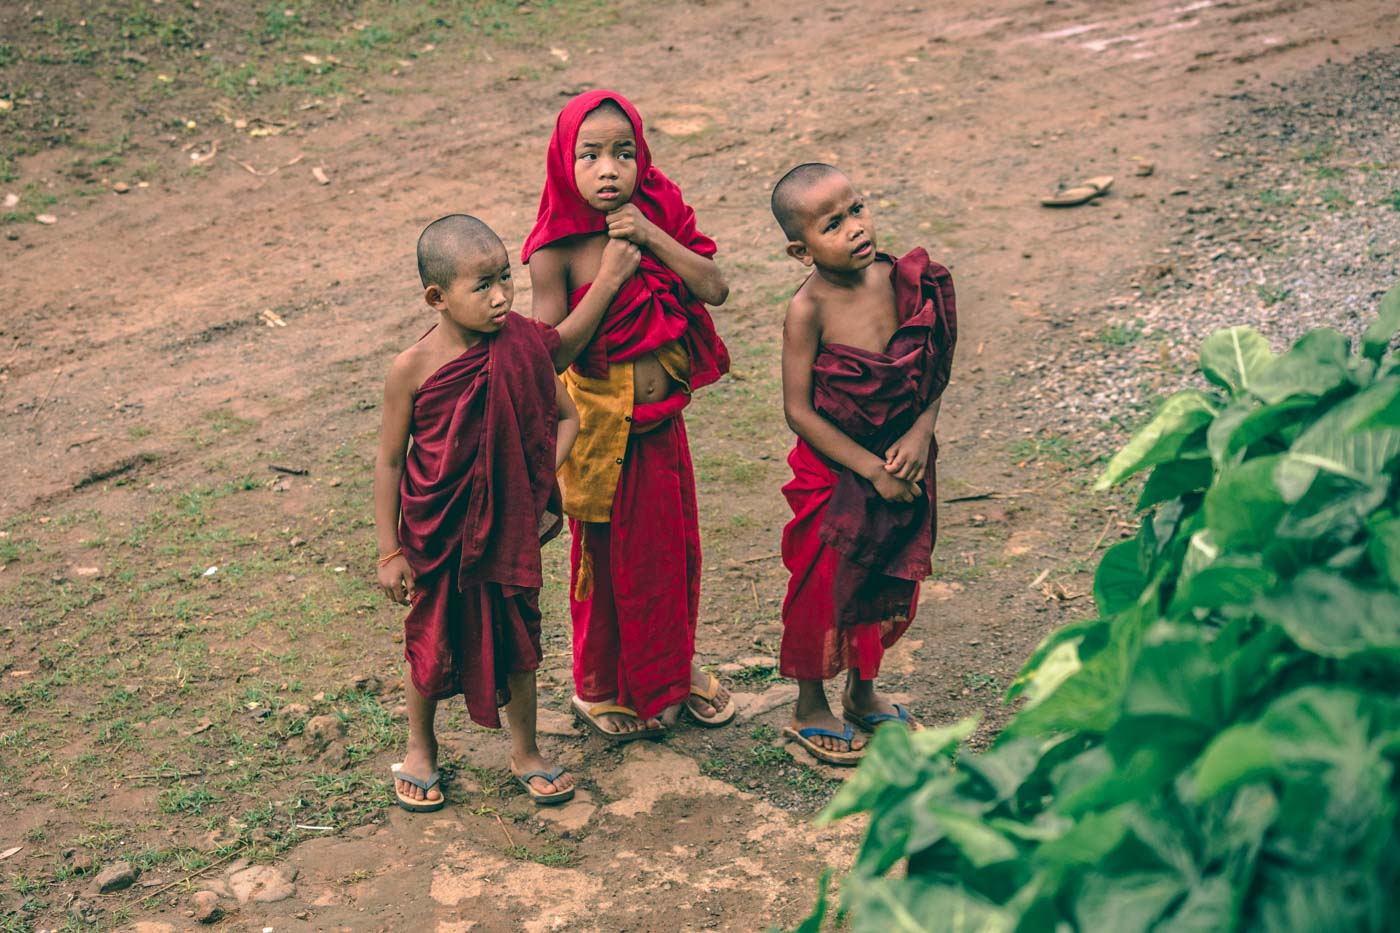 Young monks walking around a remote village in the Shan state. Myanmar